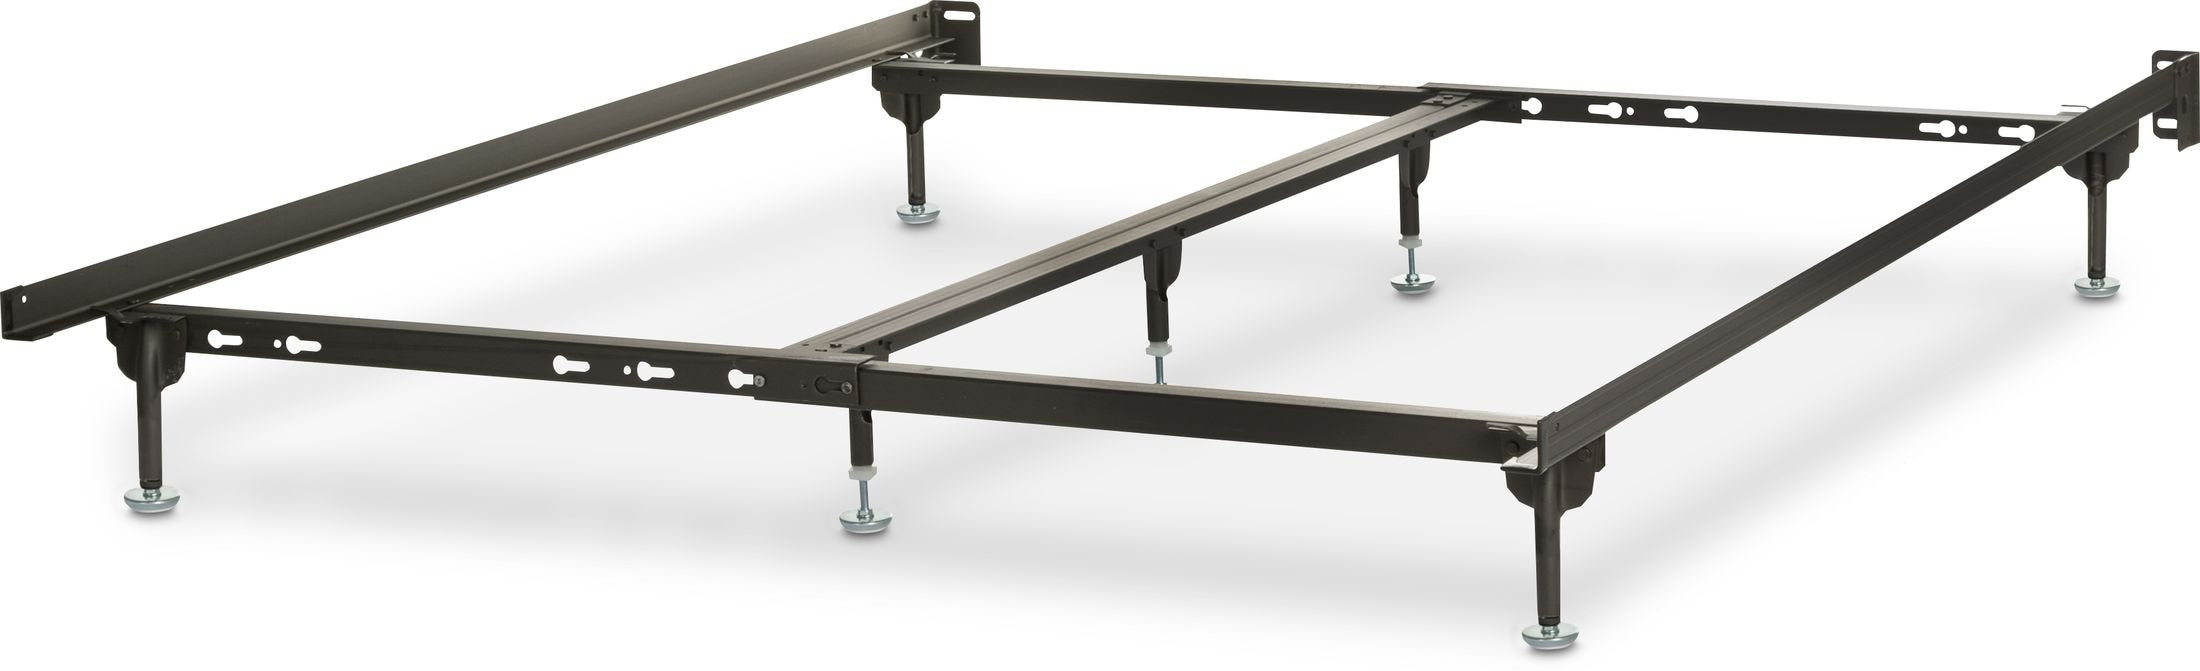 Mattresses and Bedding - Universal Bed Frame